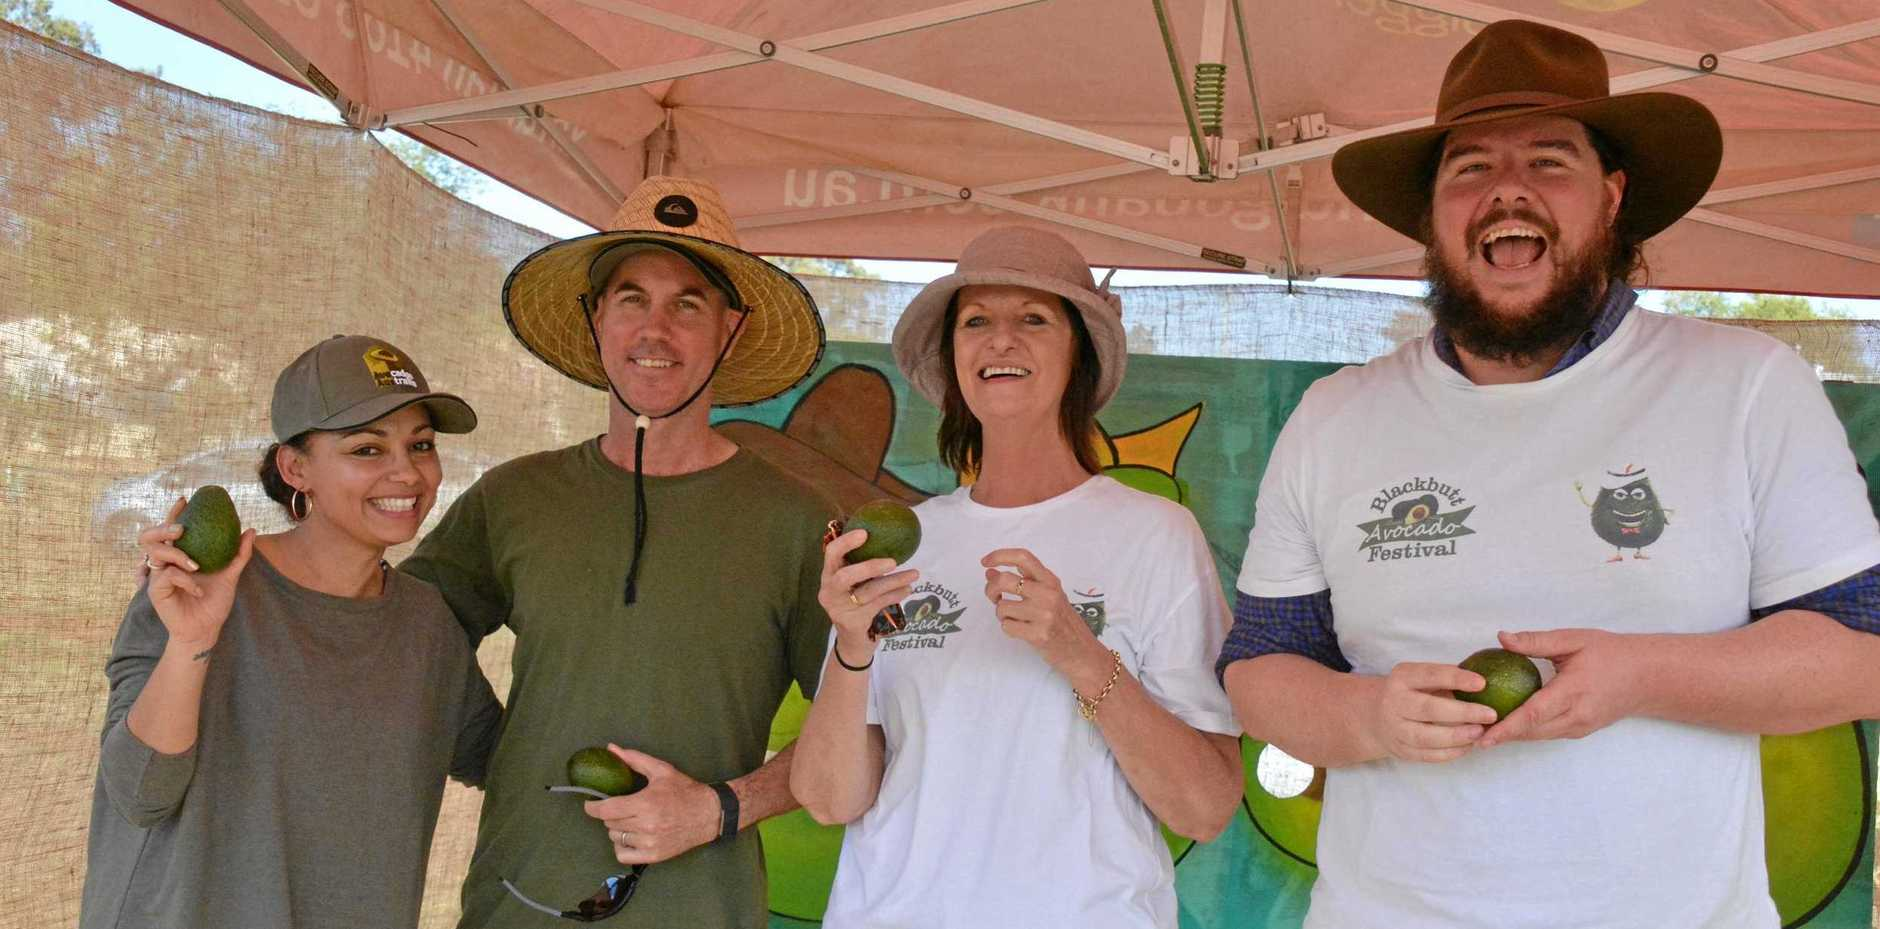 AVO TOSS: Volunteers Amanda Hough, Ken Hough, Chris Hvalica and Shayne Burns ran one of the avocado competitions at the Blackbutt Avocado Festival in 2018.